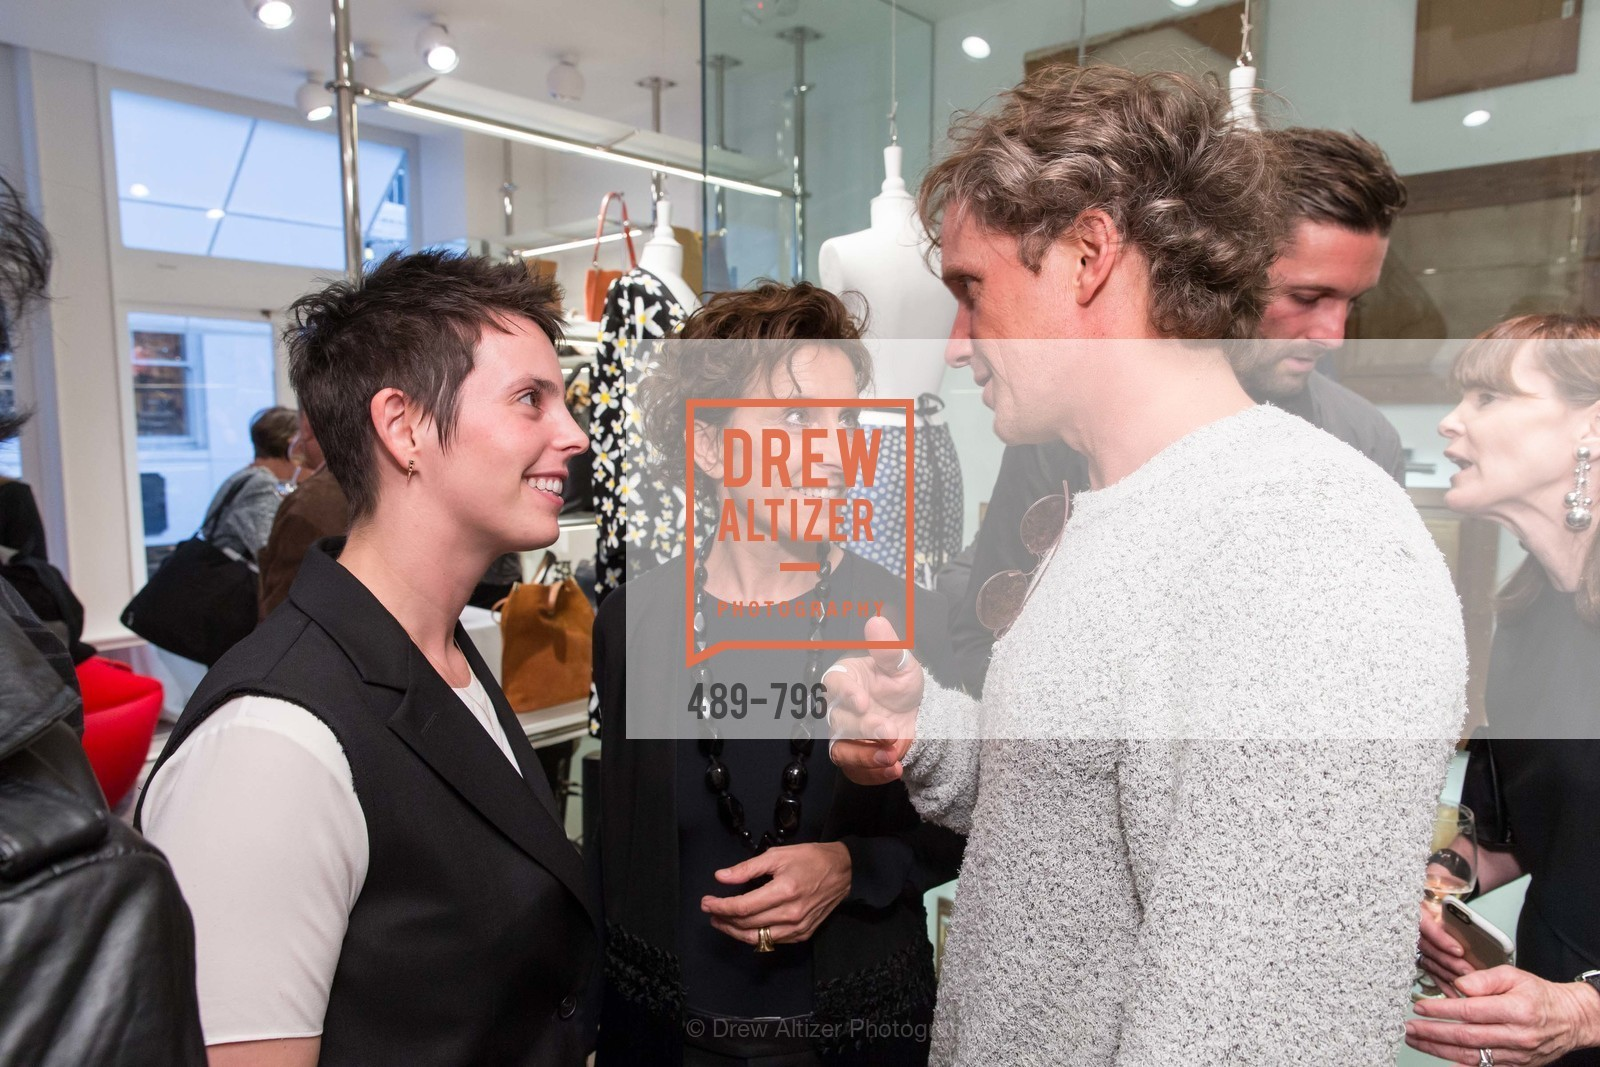 Jessica Silverman, Monica Voltolina, Yves Behar, MAISON MARGIELA San Francisco Boutique Grand Opening Event, US, April 24th, 2015,Drew Altizer, Drew Altizer Photography, full-service agency, private events, San Francisco photographer, photographer california